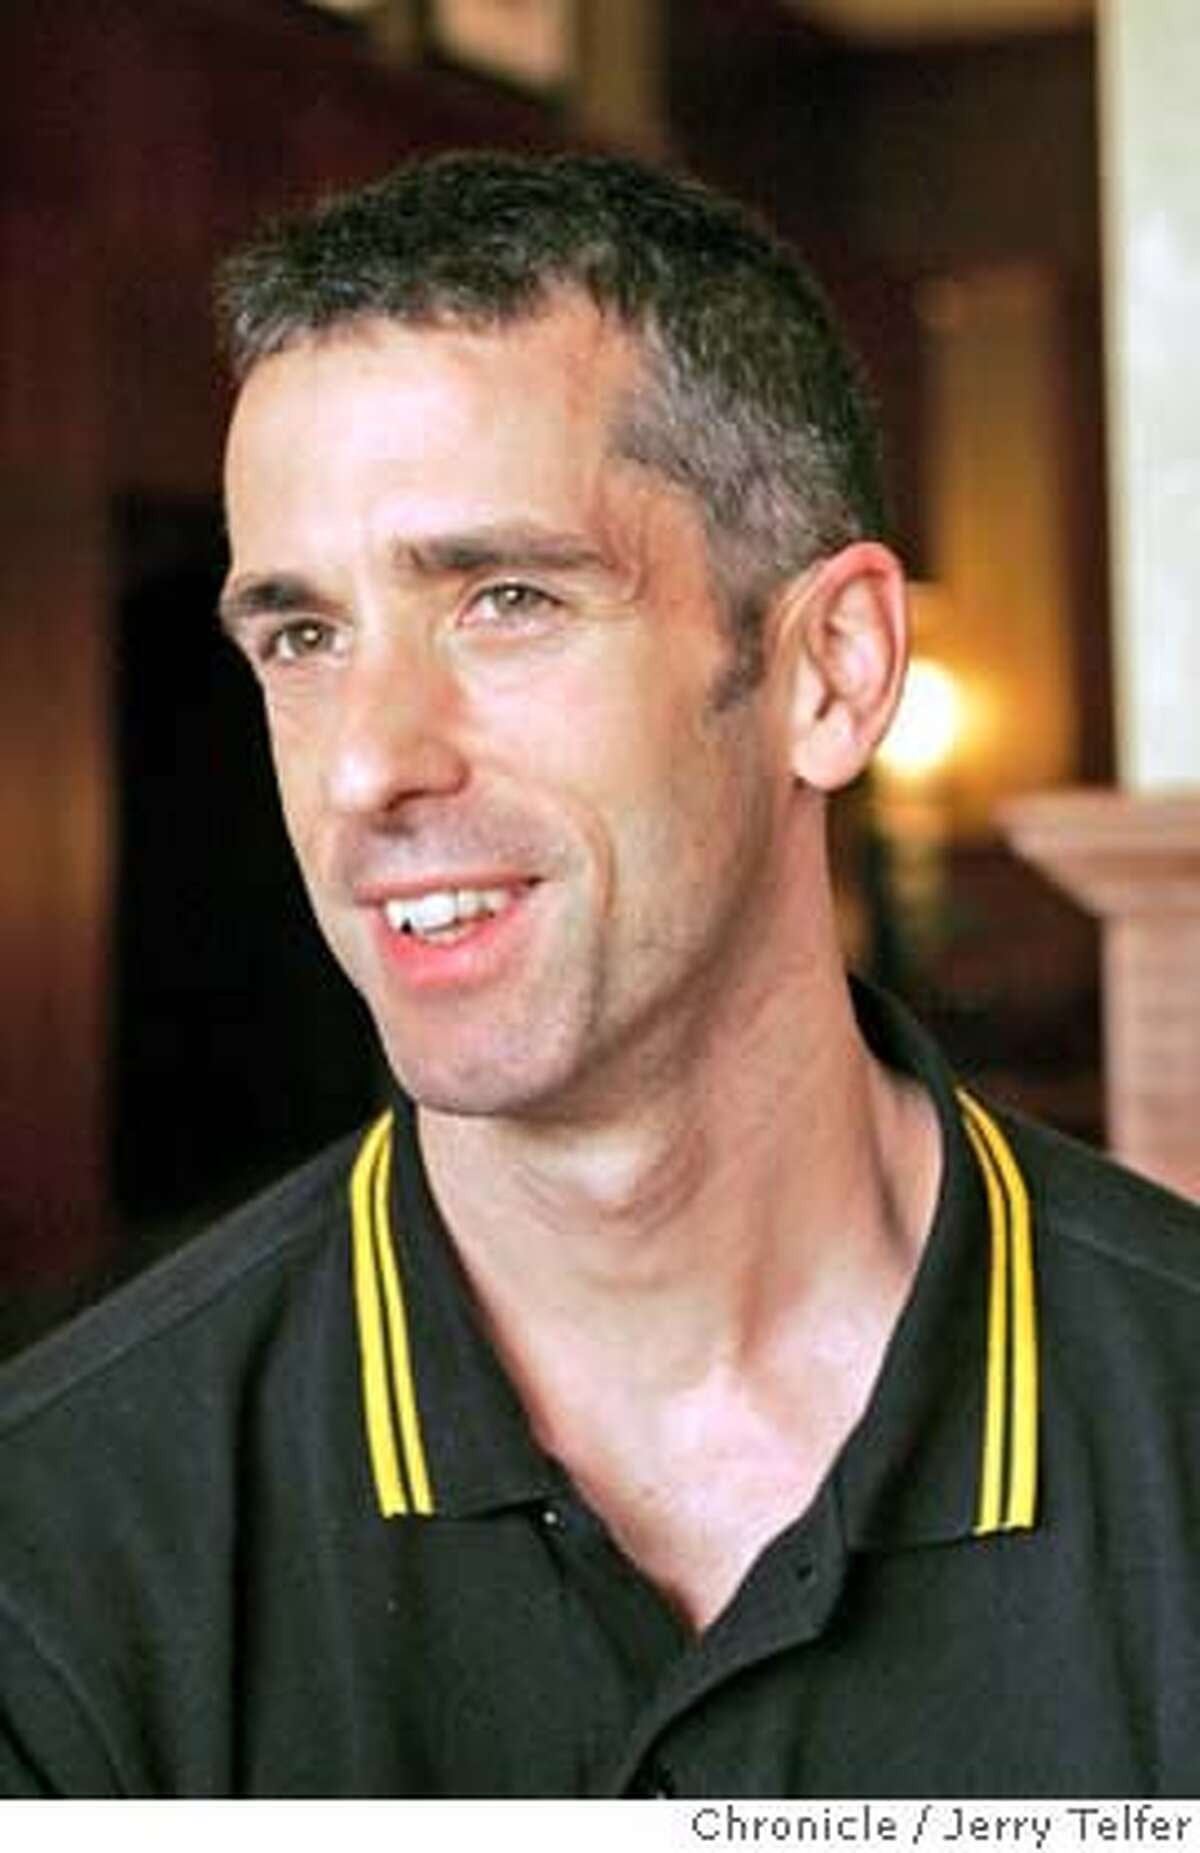 savage11_057_jlt.jpg Author Dan Savage has written a new book - this one about same-sex marriage. Photo by JERRY TELFER / The Chronicle